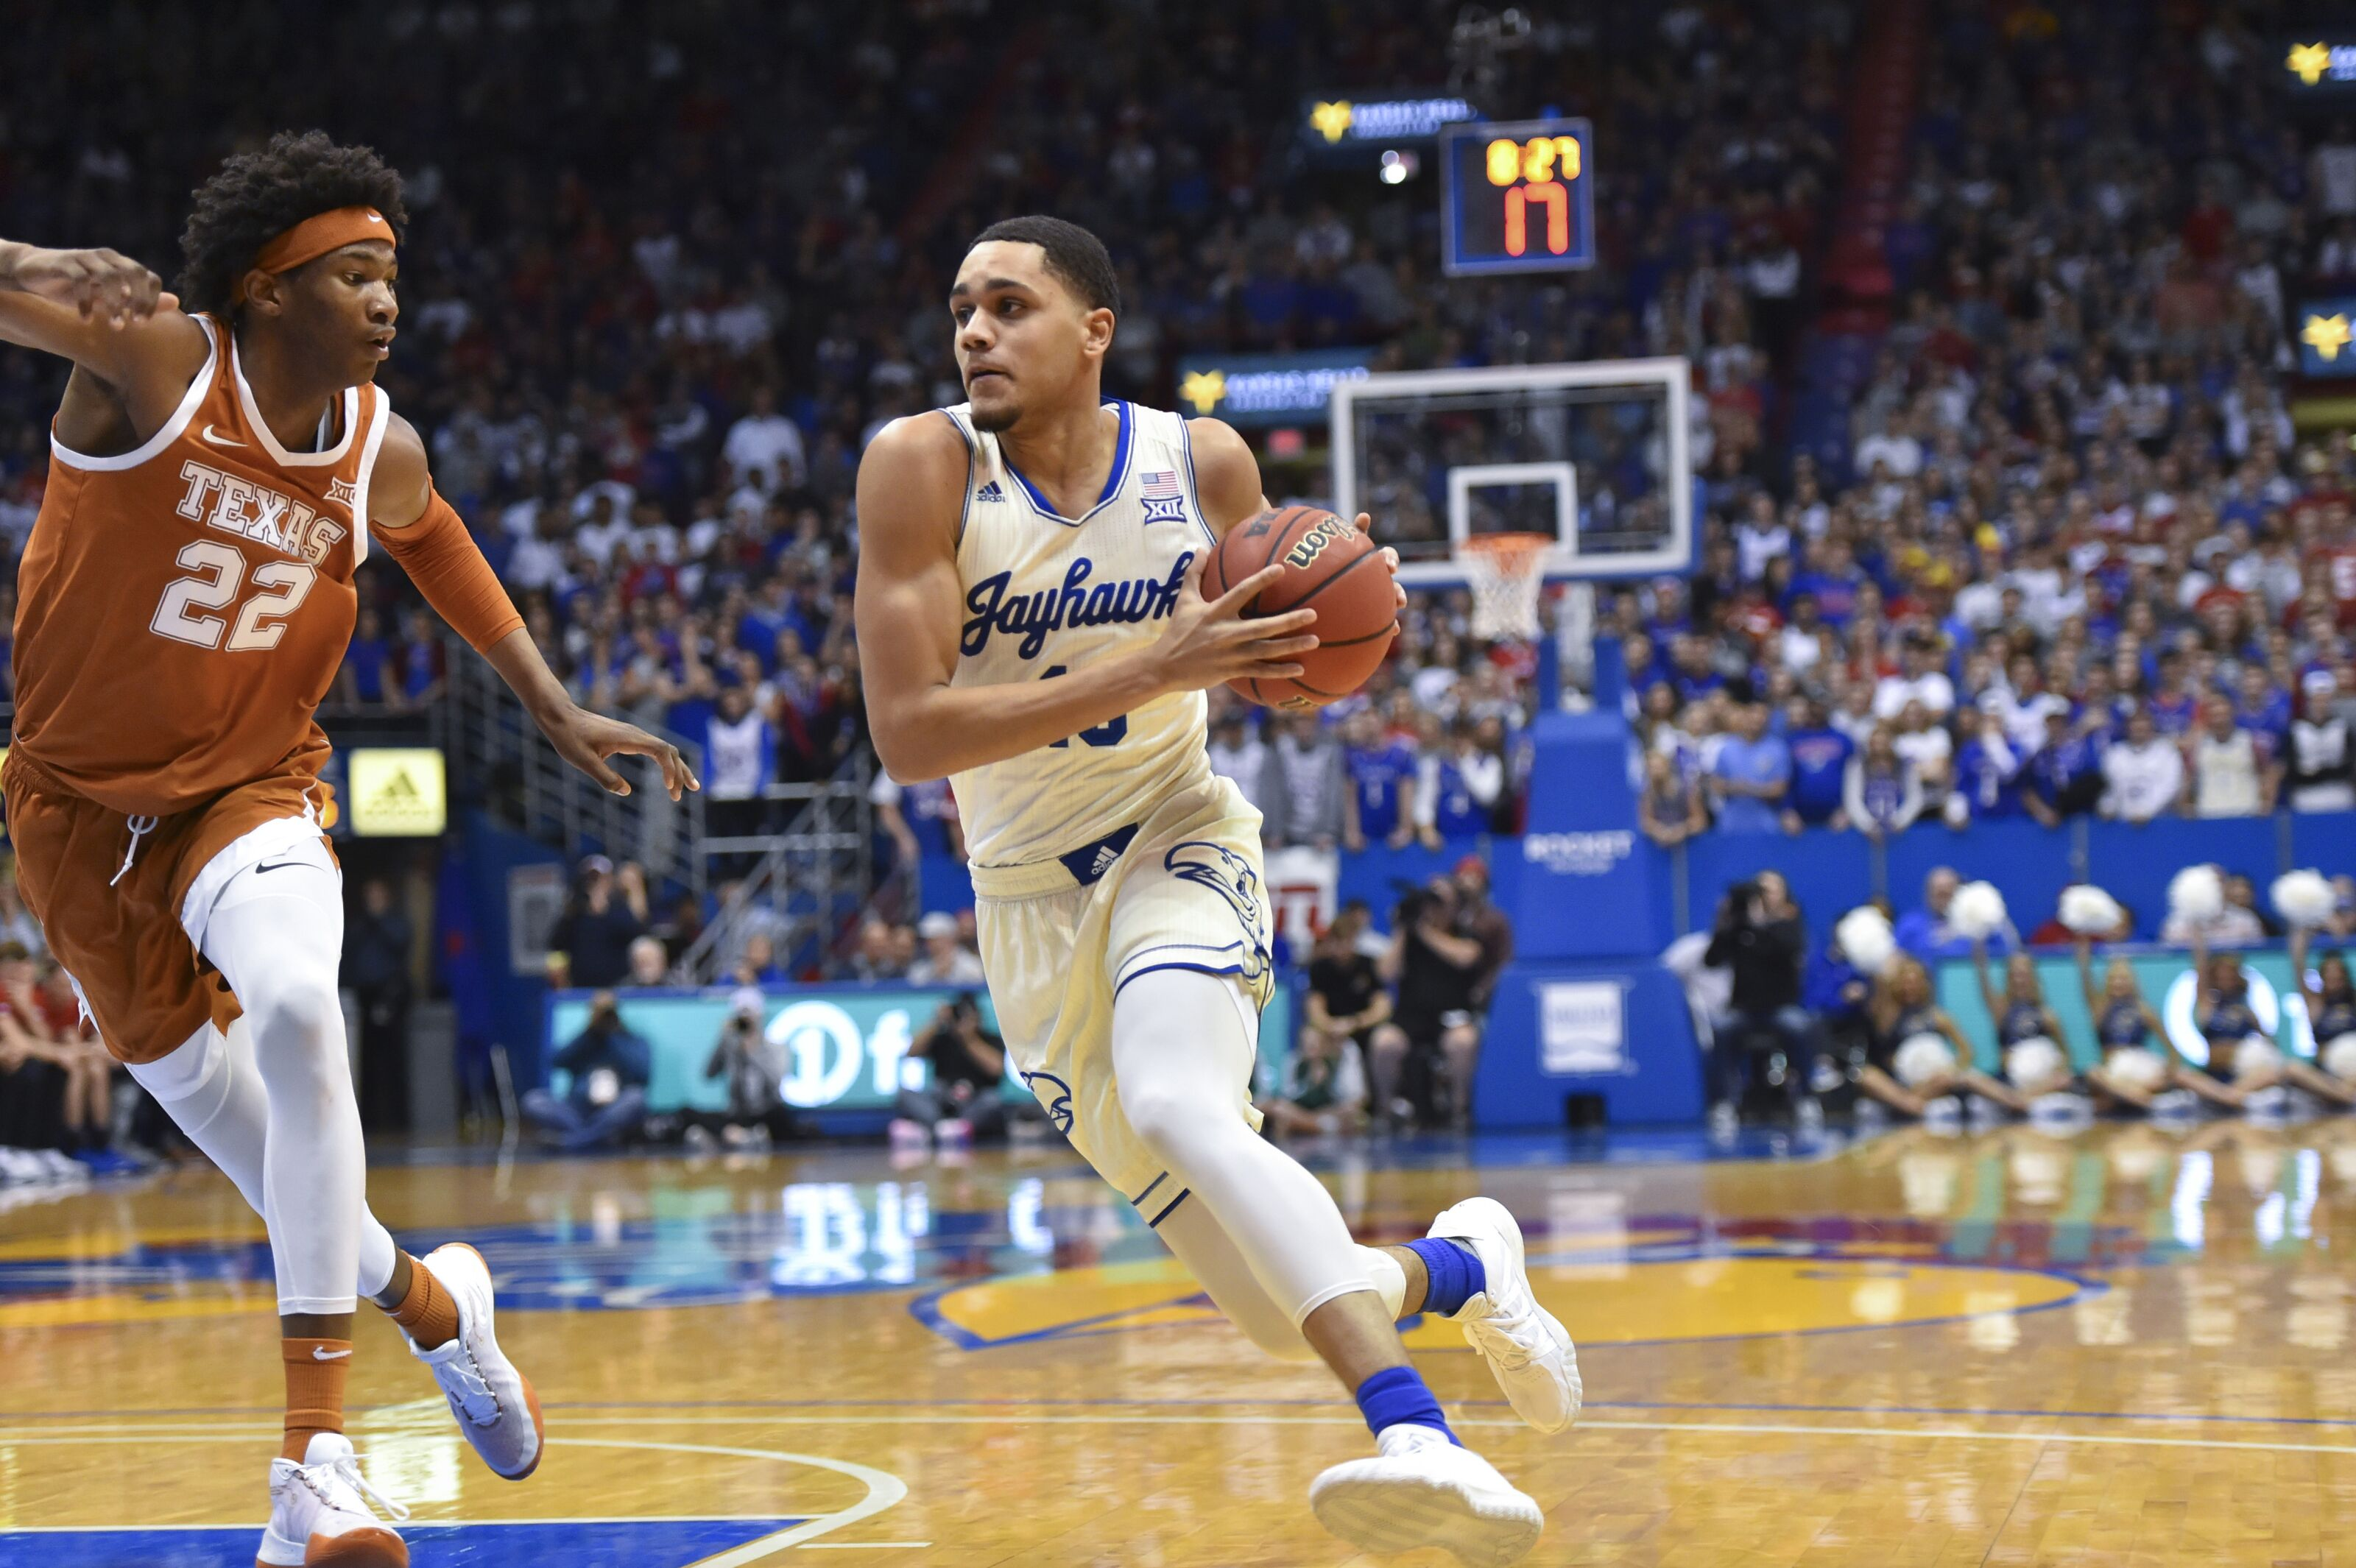 Kansas basketball is the best team in the nation with a win at Baylor